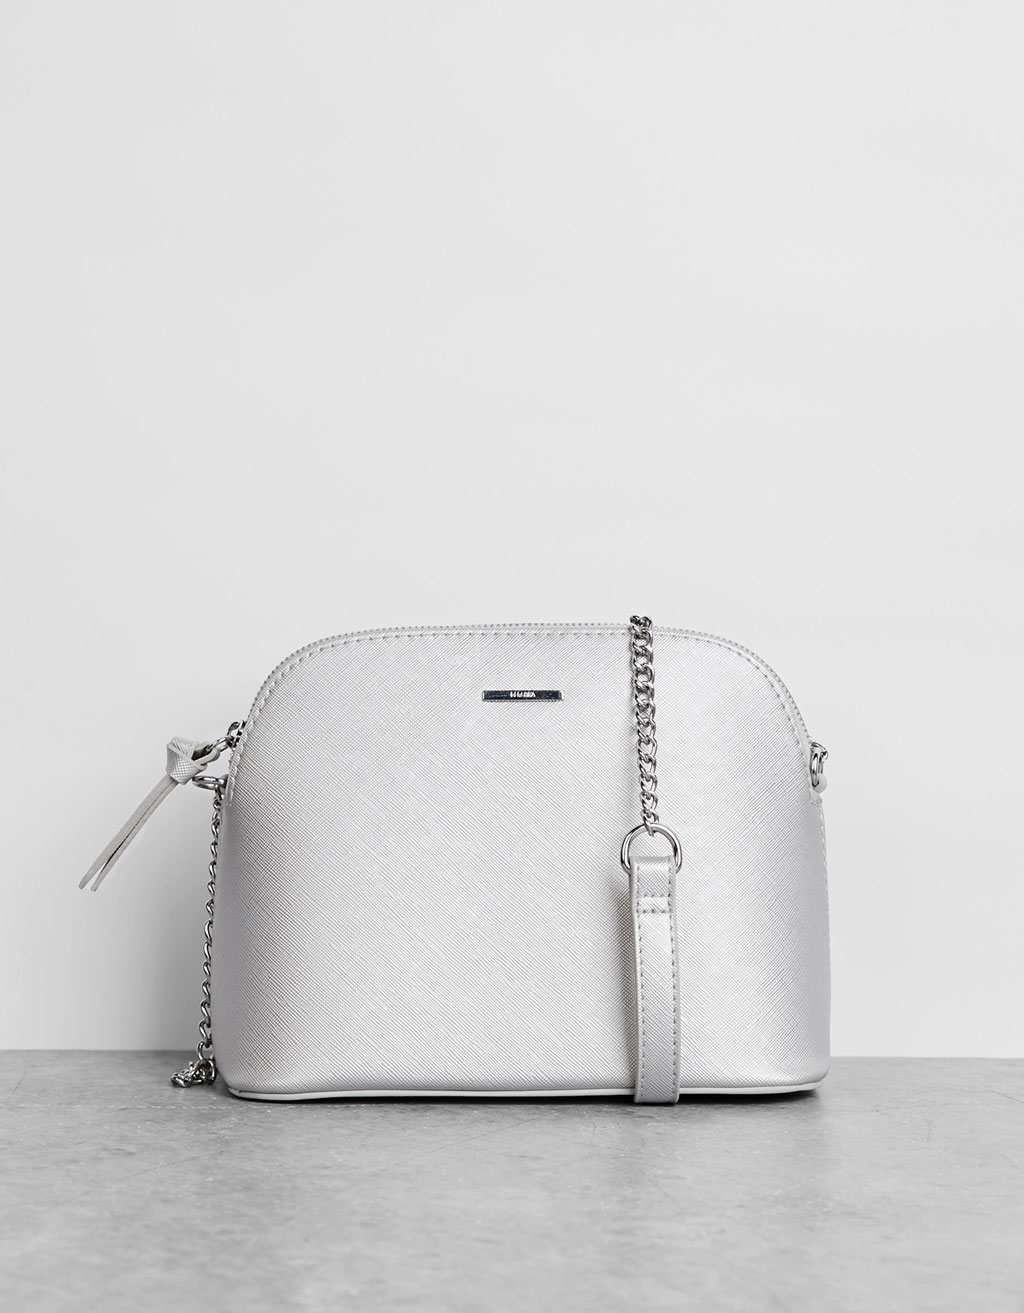 Ladybag with thin chain strap